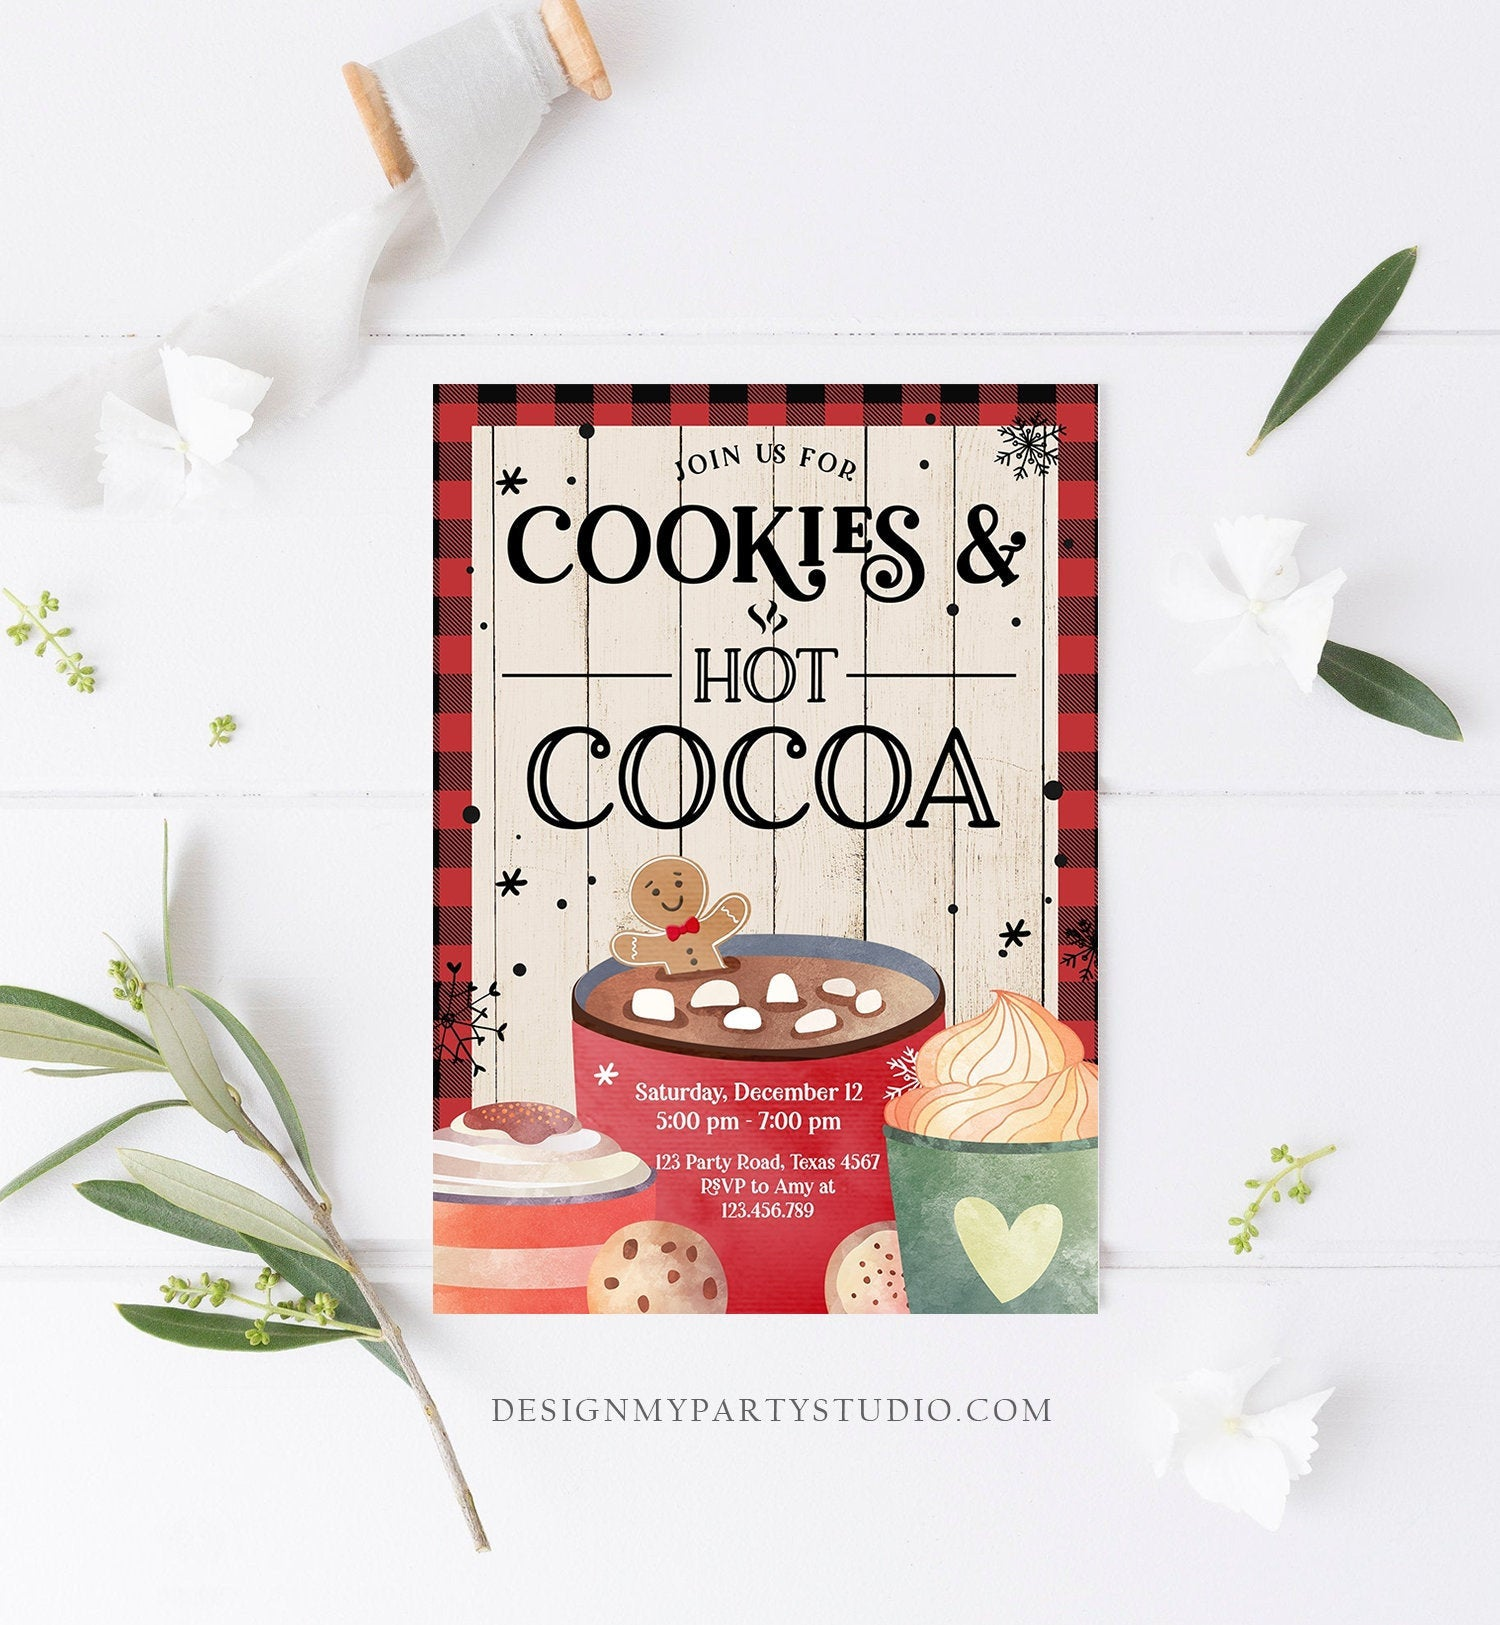 Editable Cookies and Cocoa Invitation Hot Cocoa Party Invite Hot Chocolate Birthday Lumberjack Plaid Download Printable Template Corjl 0262